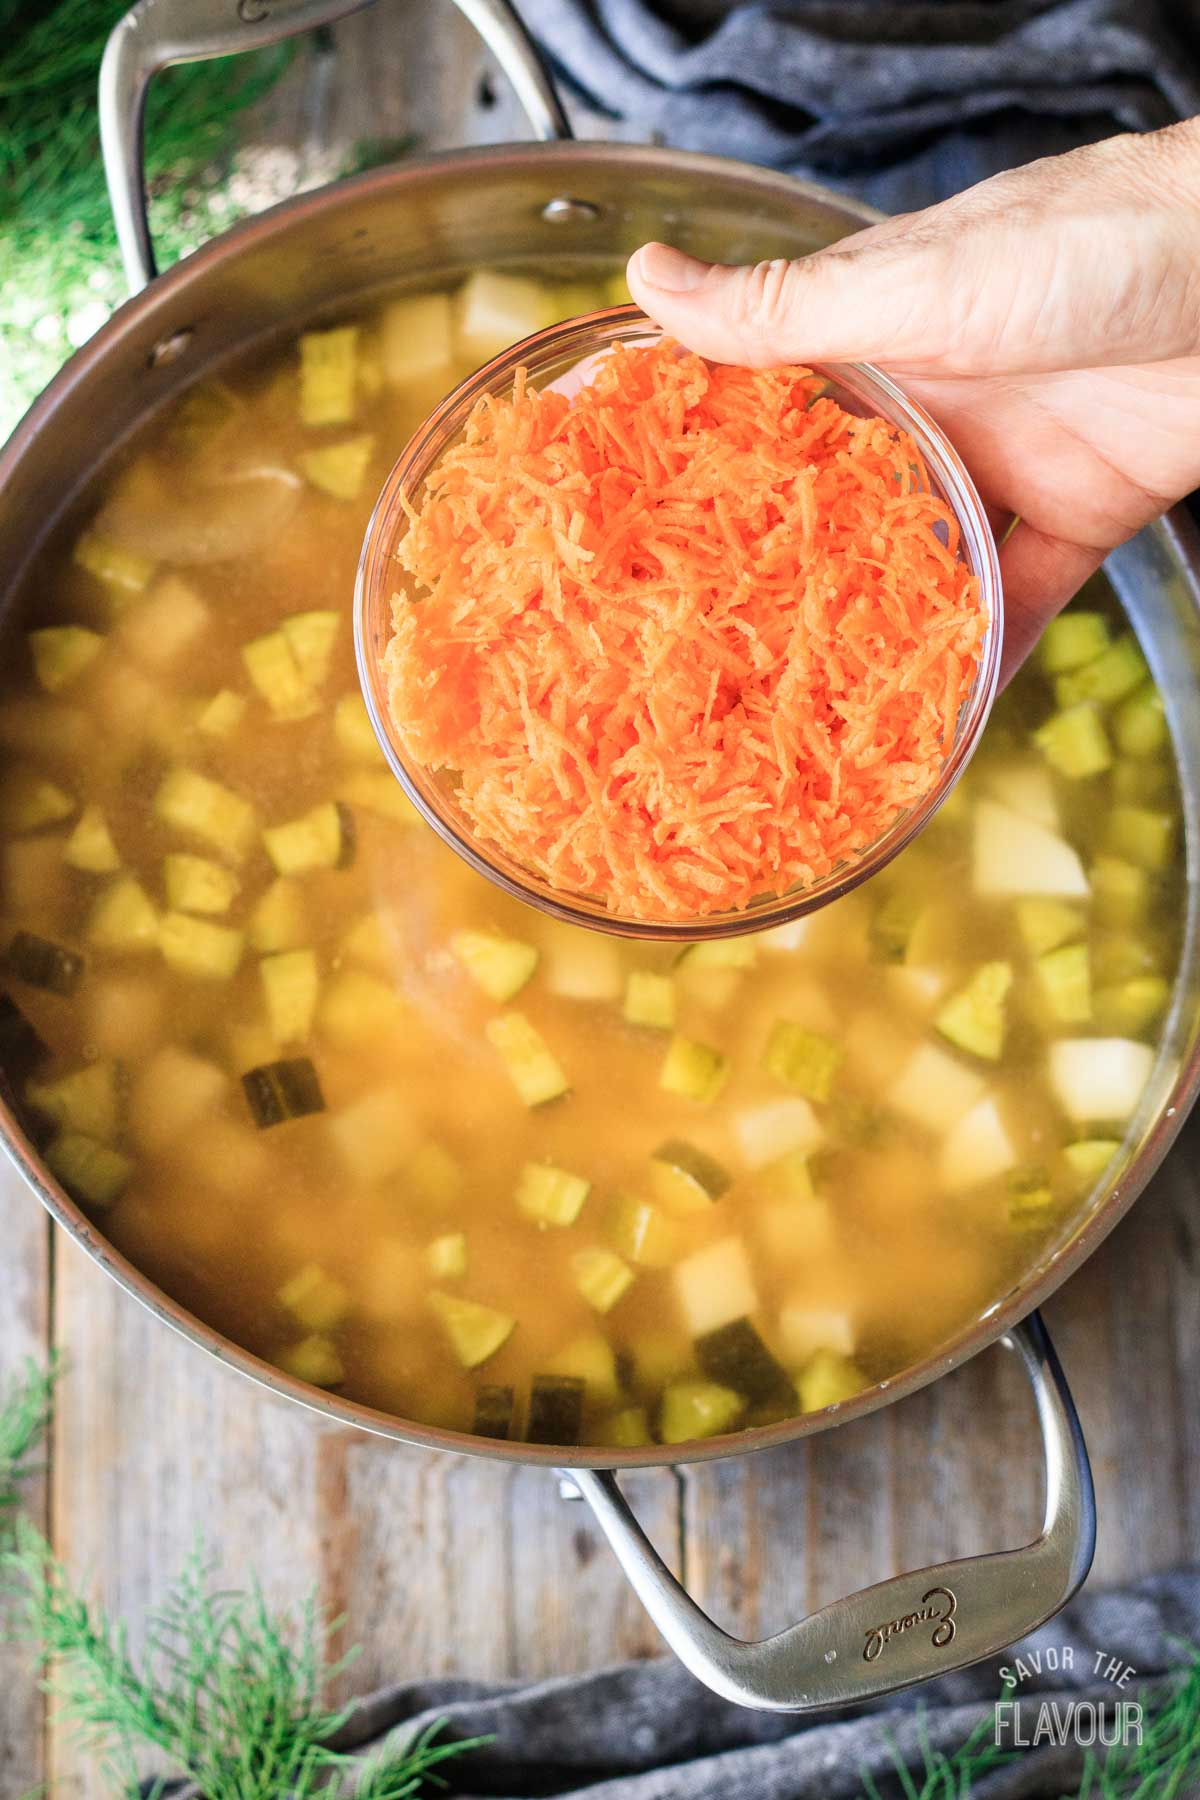 person holding a bowl of grated carrots above a pot of soup